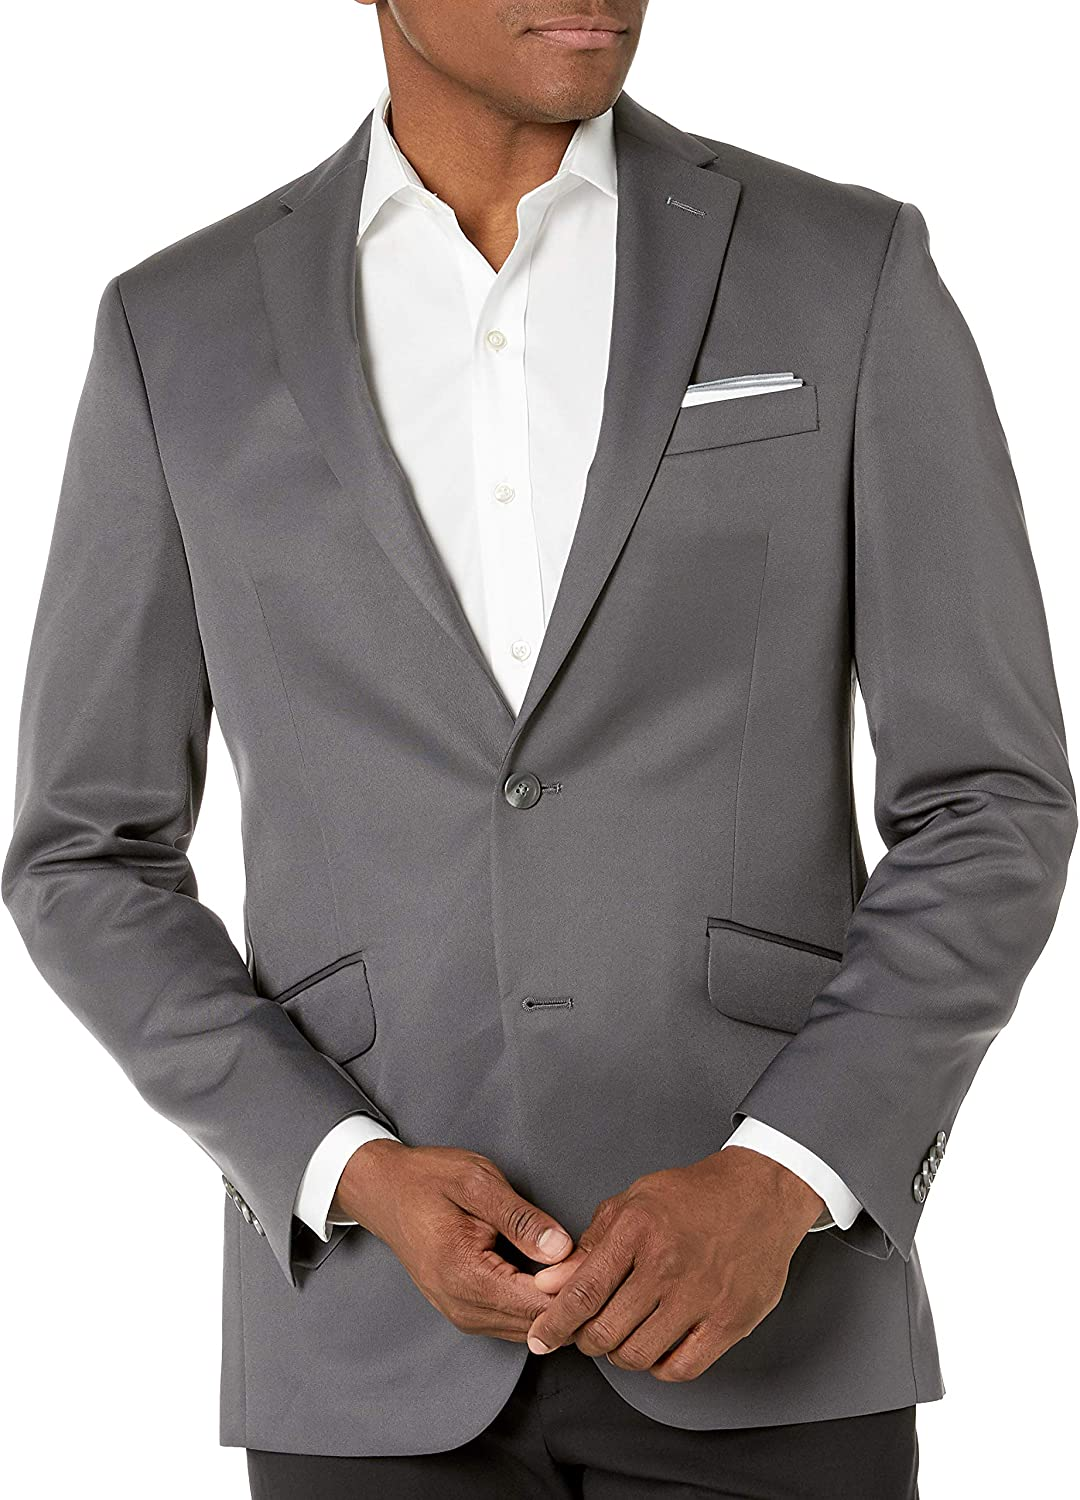 Kenneth Cole Unlisted Men's Suit Separate Jacket, Slate Grey, 38R